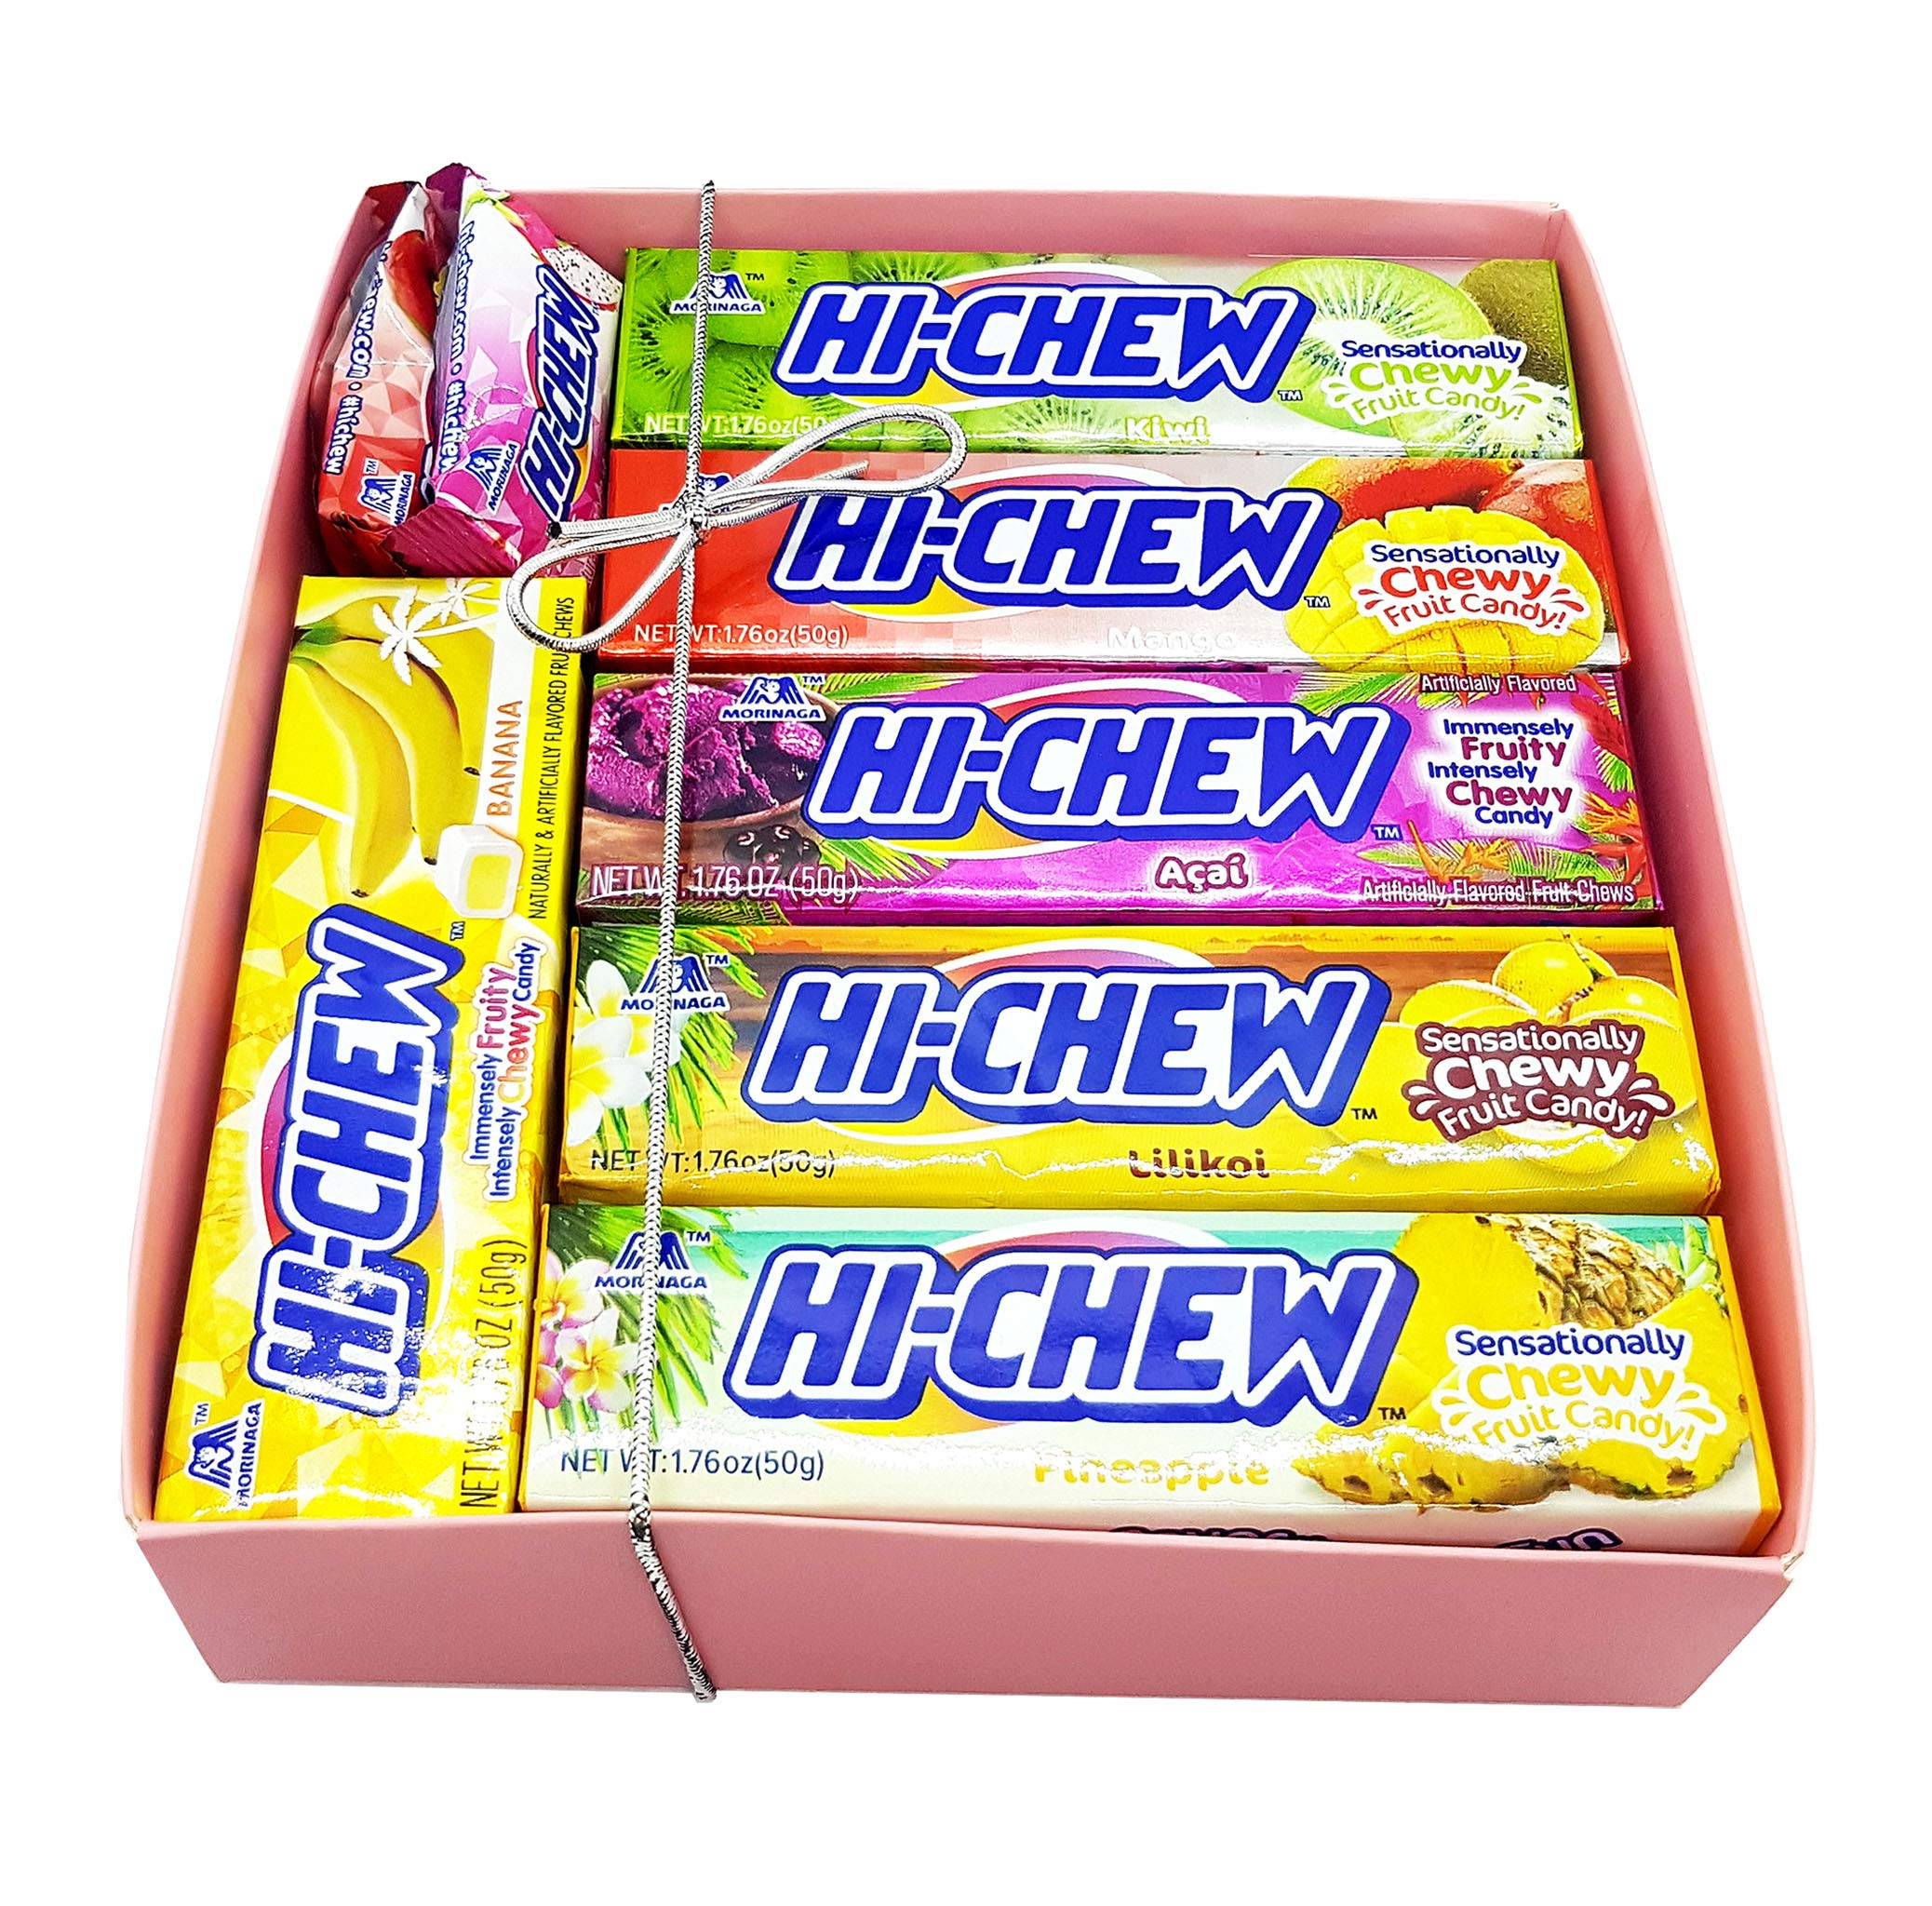 Hi-Chew Sticks Tropical Assorted 6 Flavors Plus 3 Individual Surprise Flavors Pak Gift Boxed: Mango, Banana, Kiwi, Acai, Pineapple, and Lilikoi (Passion Fruit) 15-Piece Set by Hi-Chew